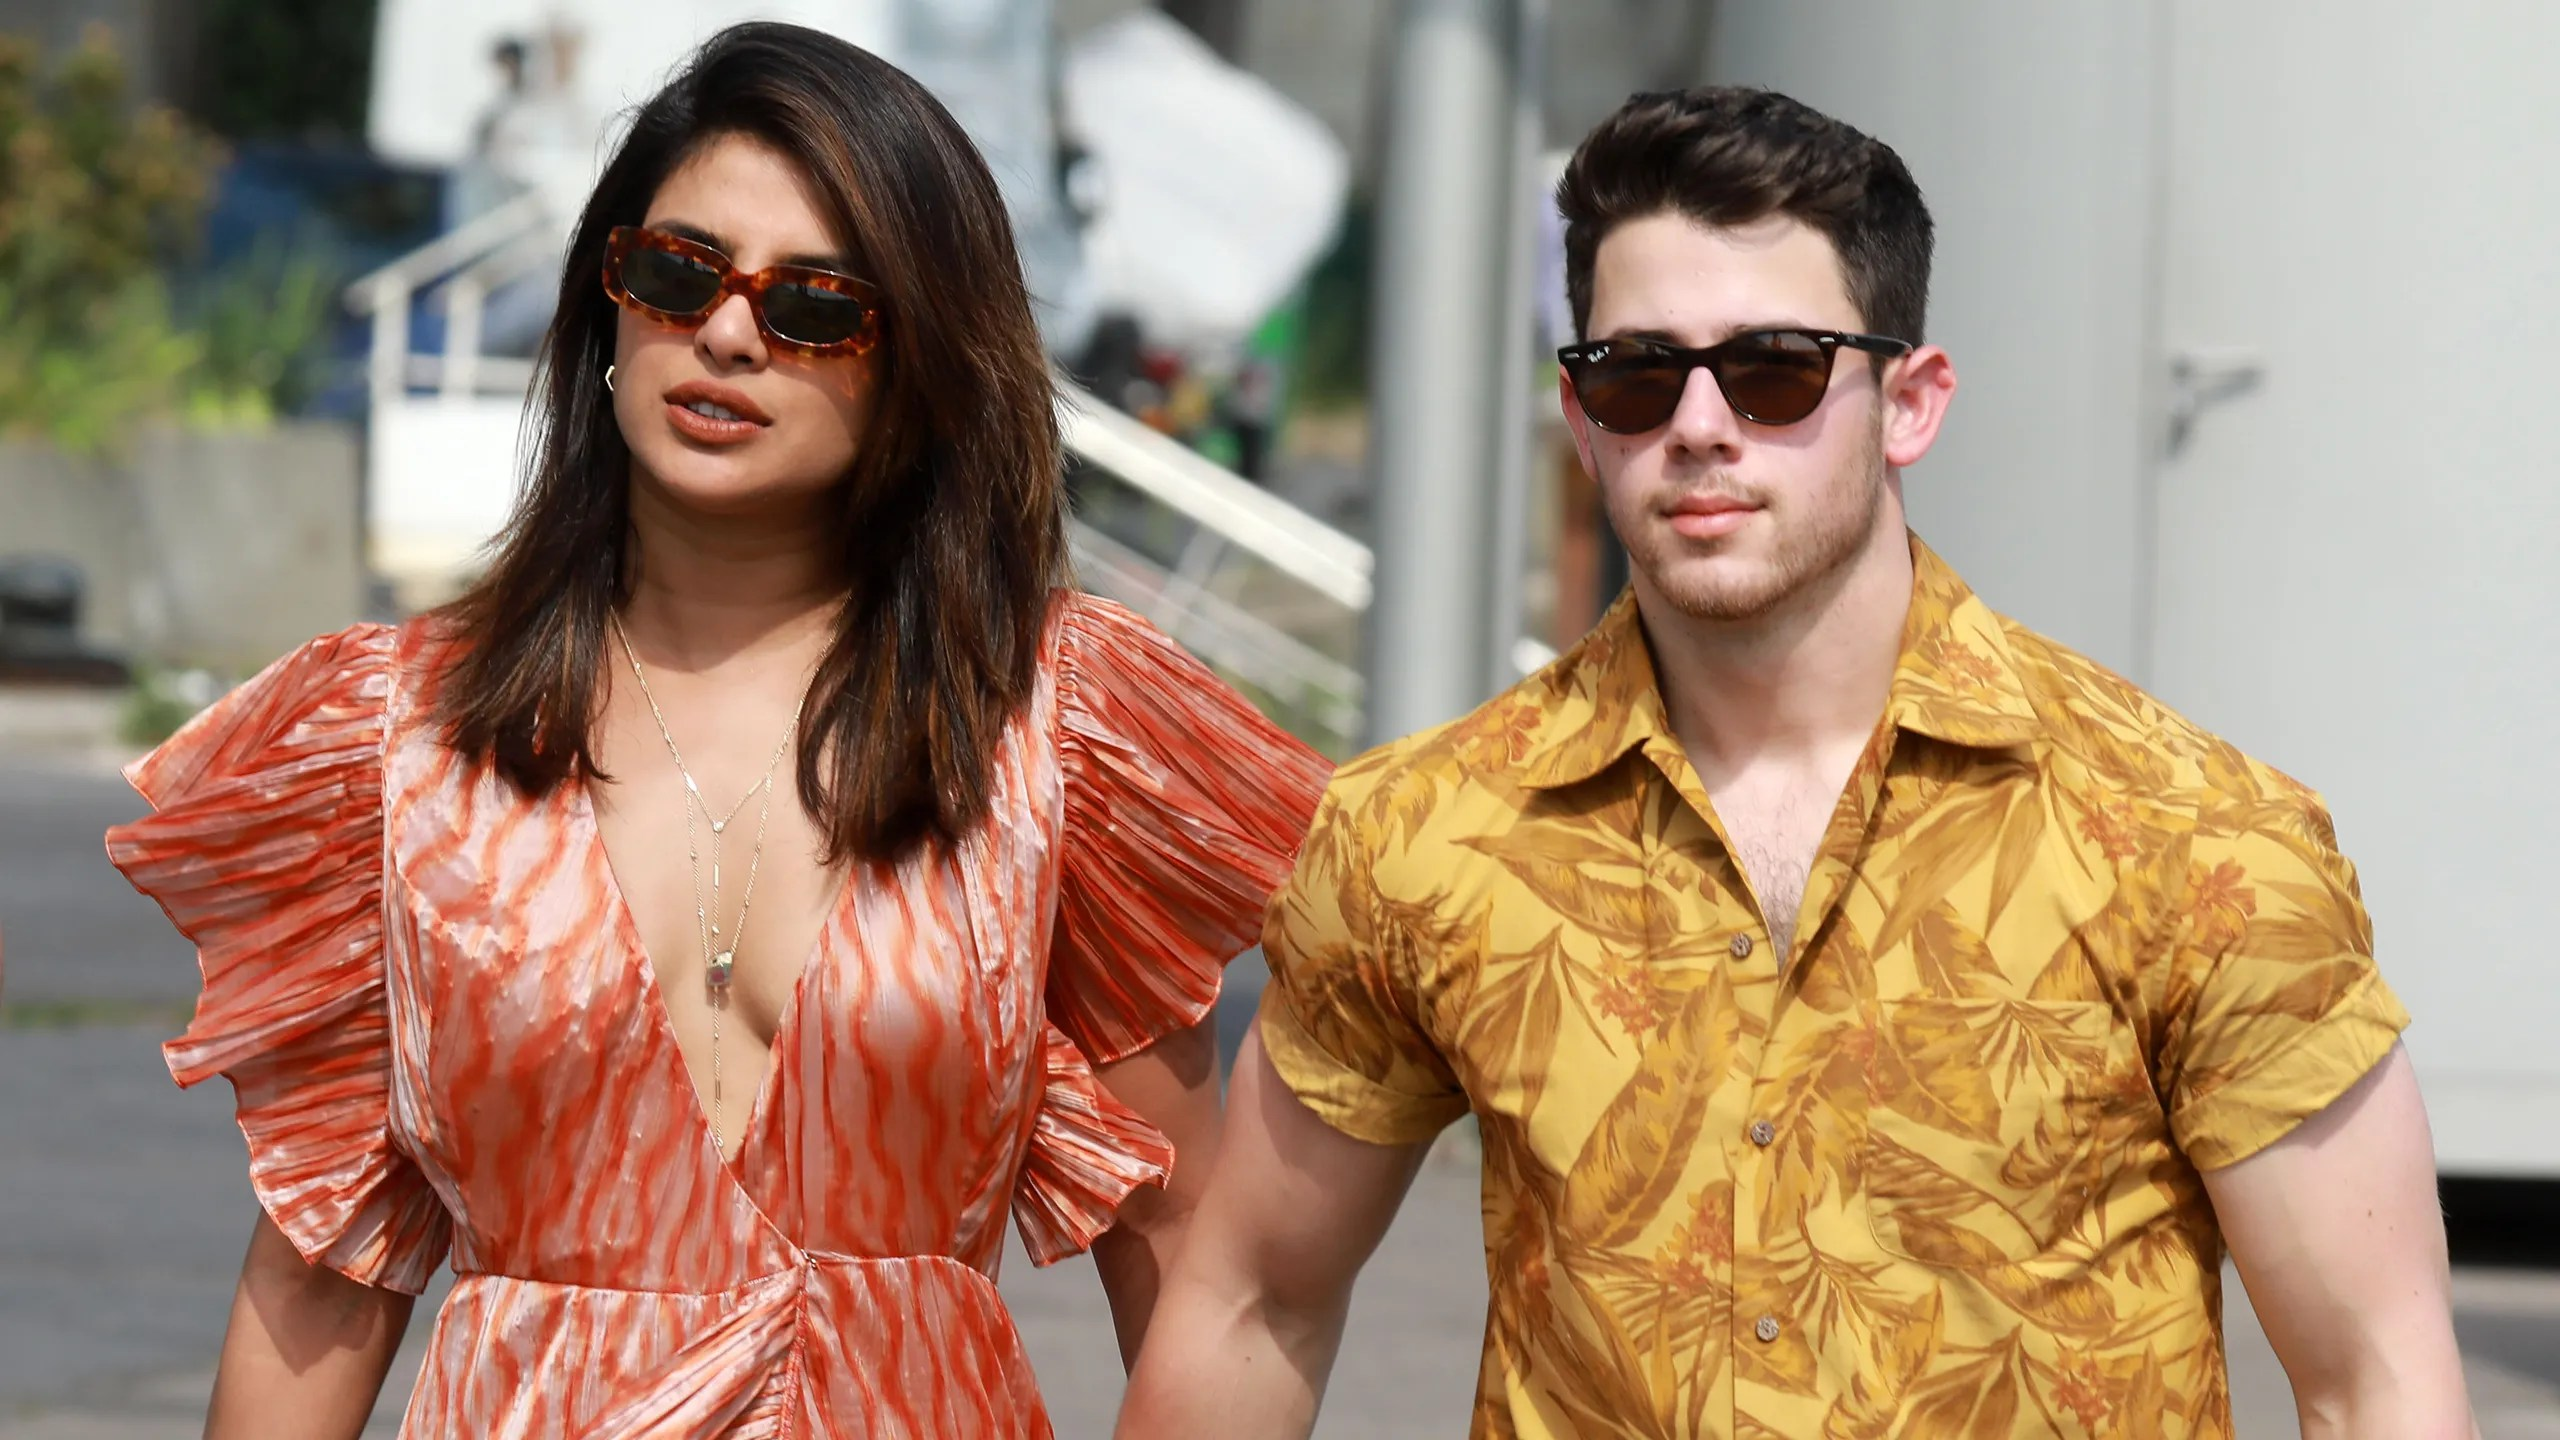 Nick Jonas And Priyanka Chopra Give A Peek Of Their Tuscan